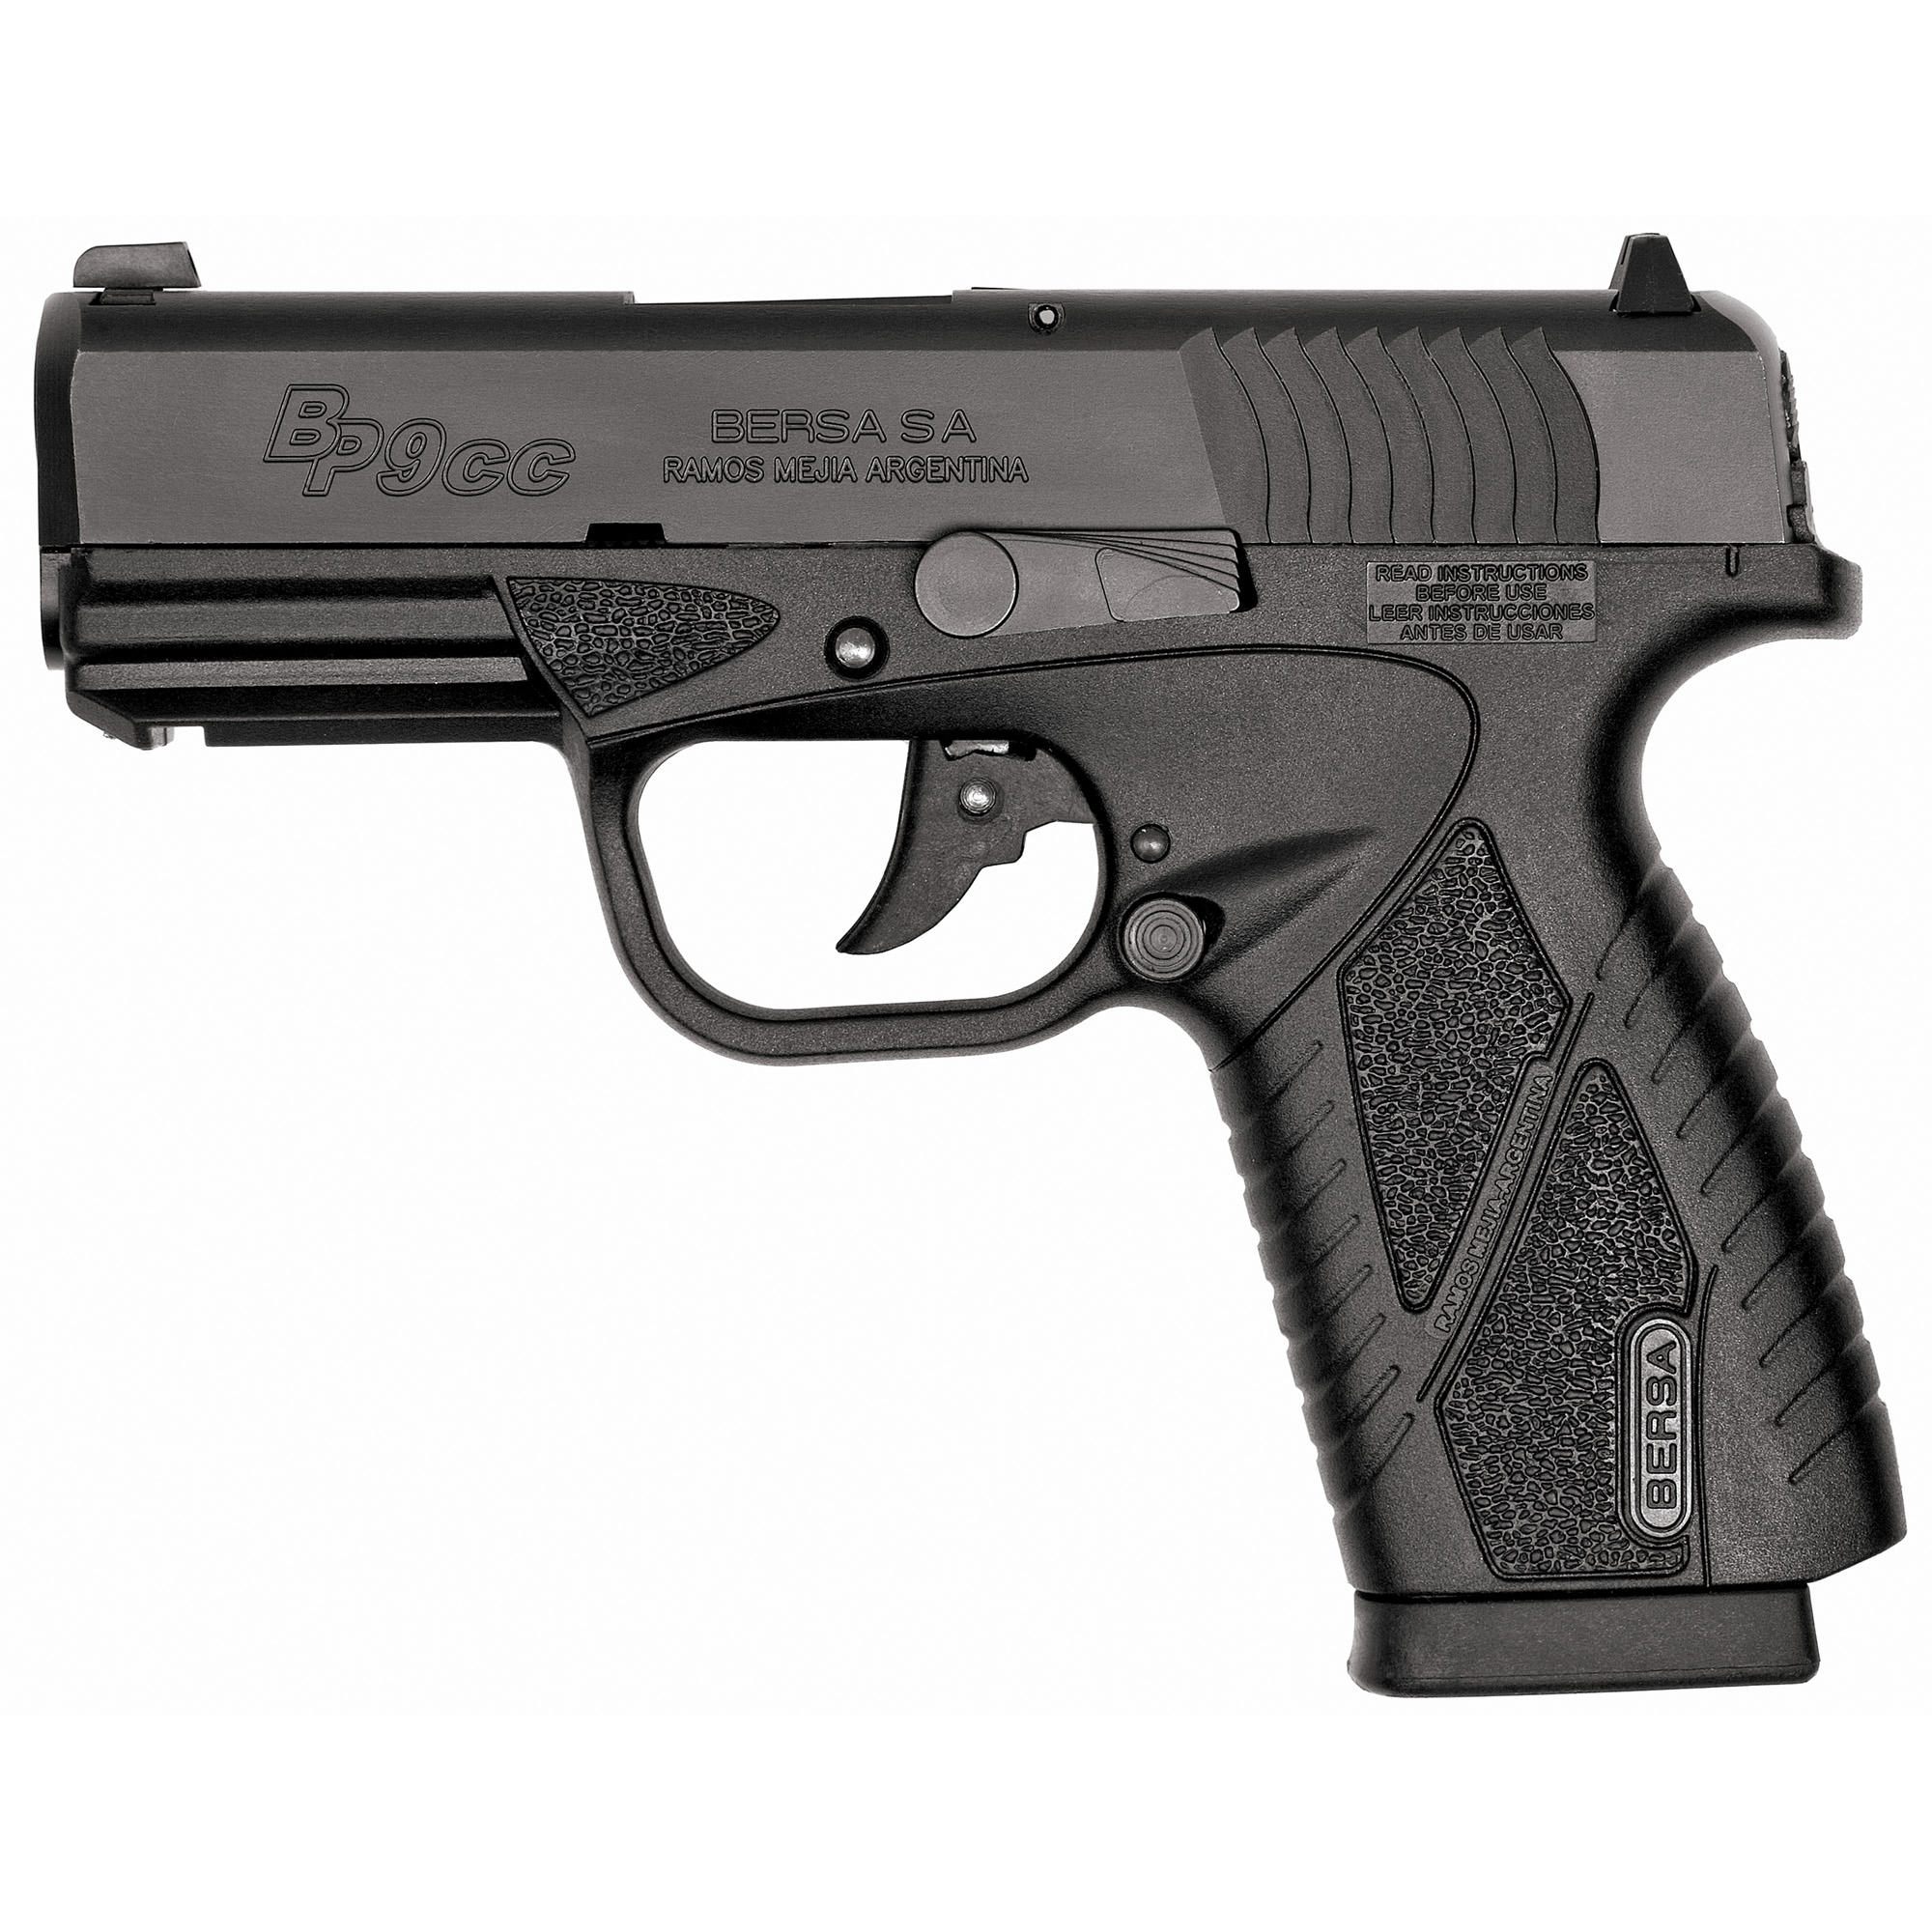 "The Concealed Carry Series provides accuracy and fire power in a lightweight"" compact"" ultra thin handgun. The BPCC delivers the quality"" reliability and durability you've come to expect from BERSA and underscores their commitment to innovation and cutting edge technology."